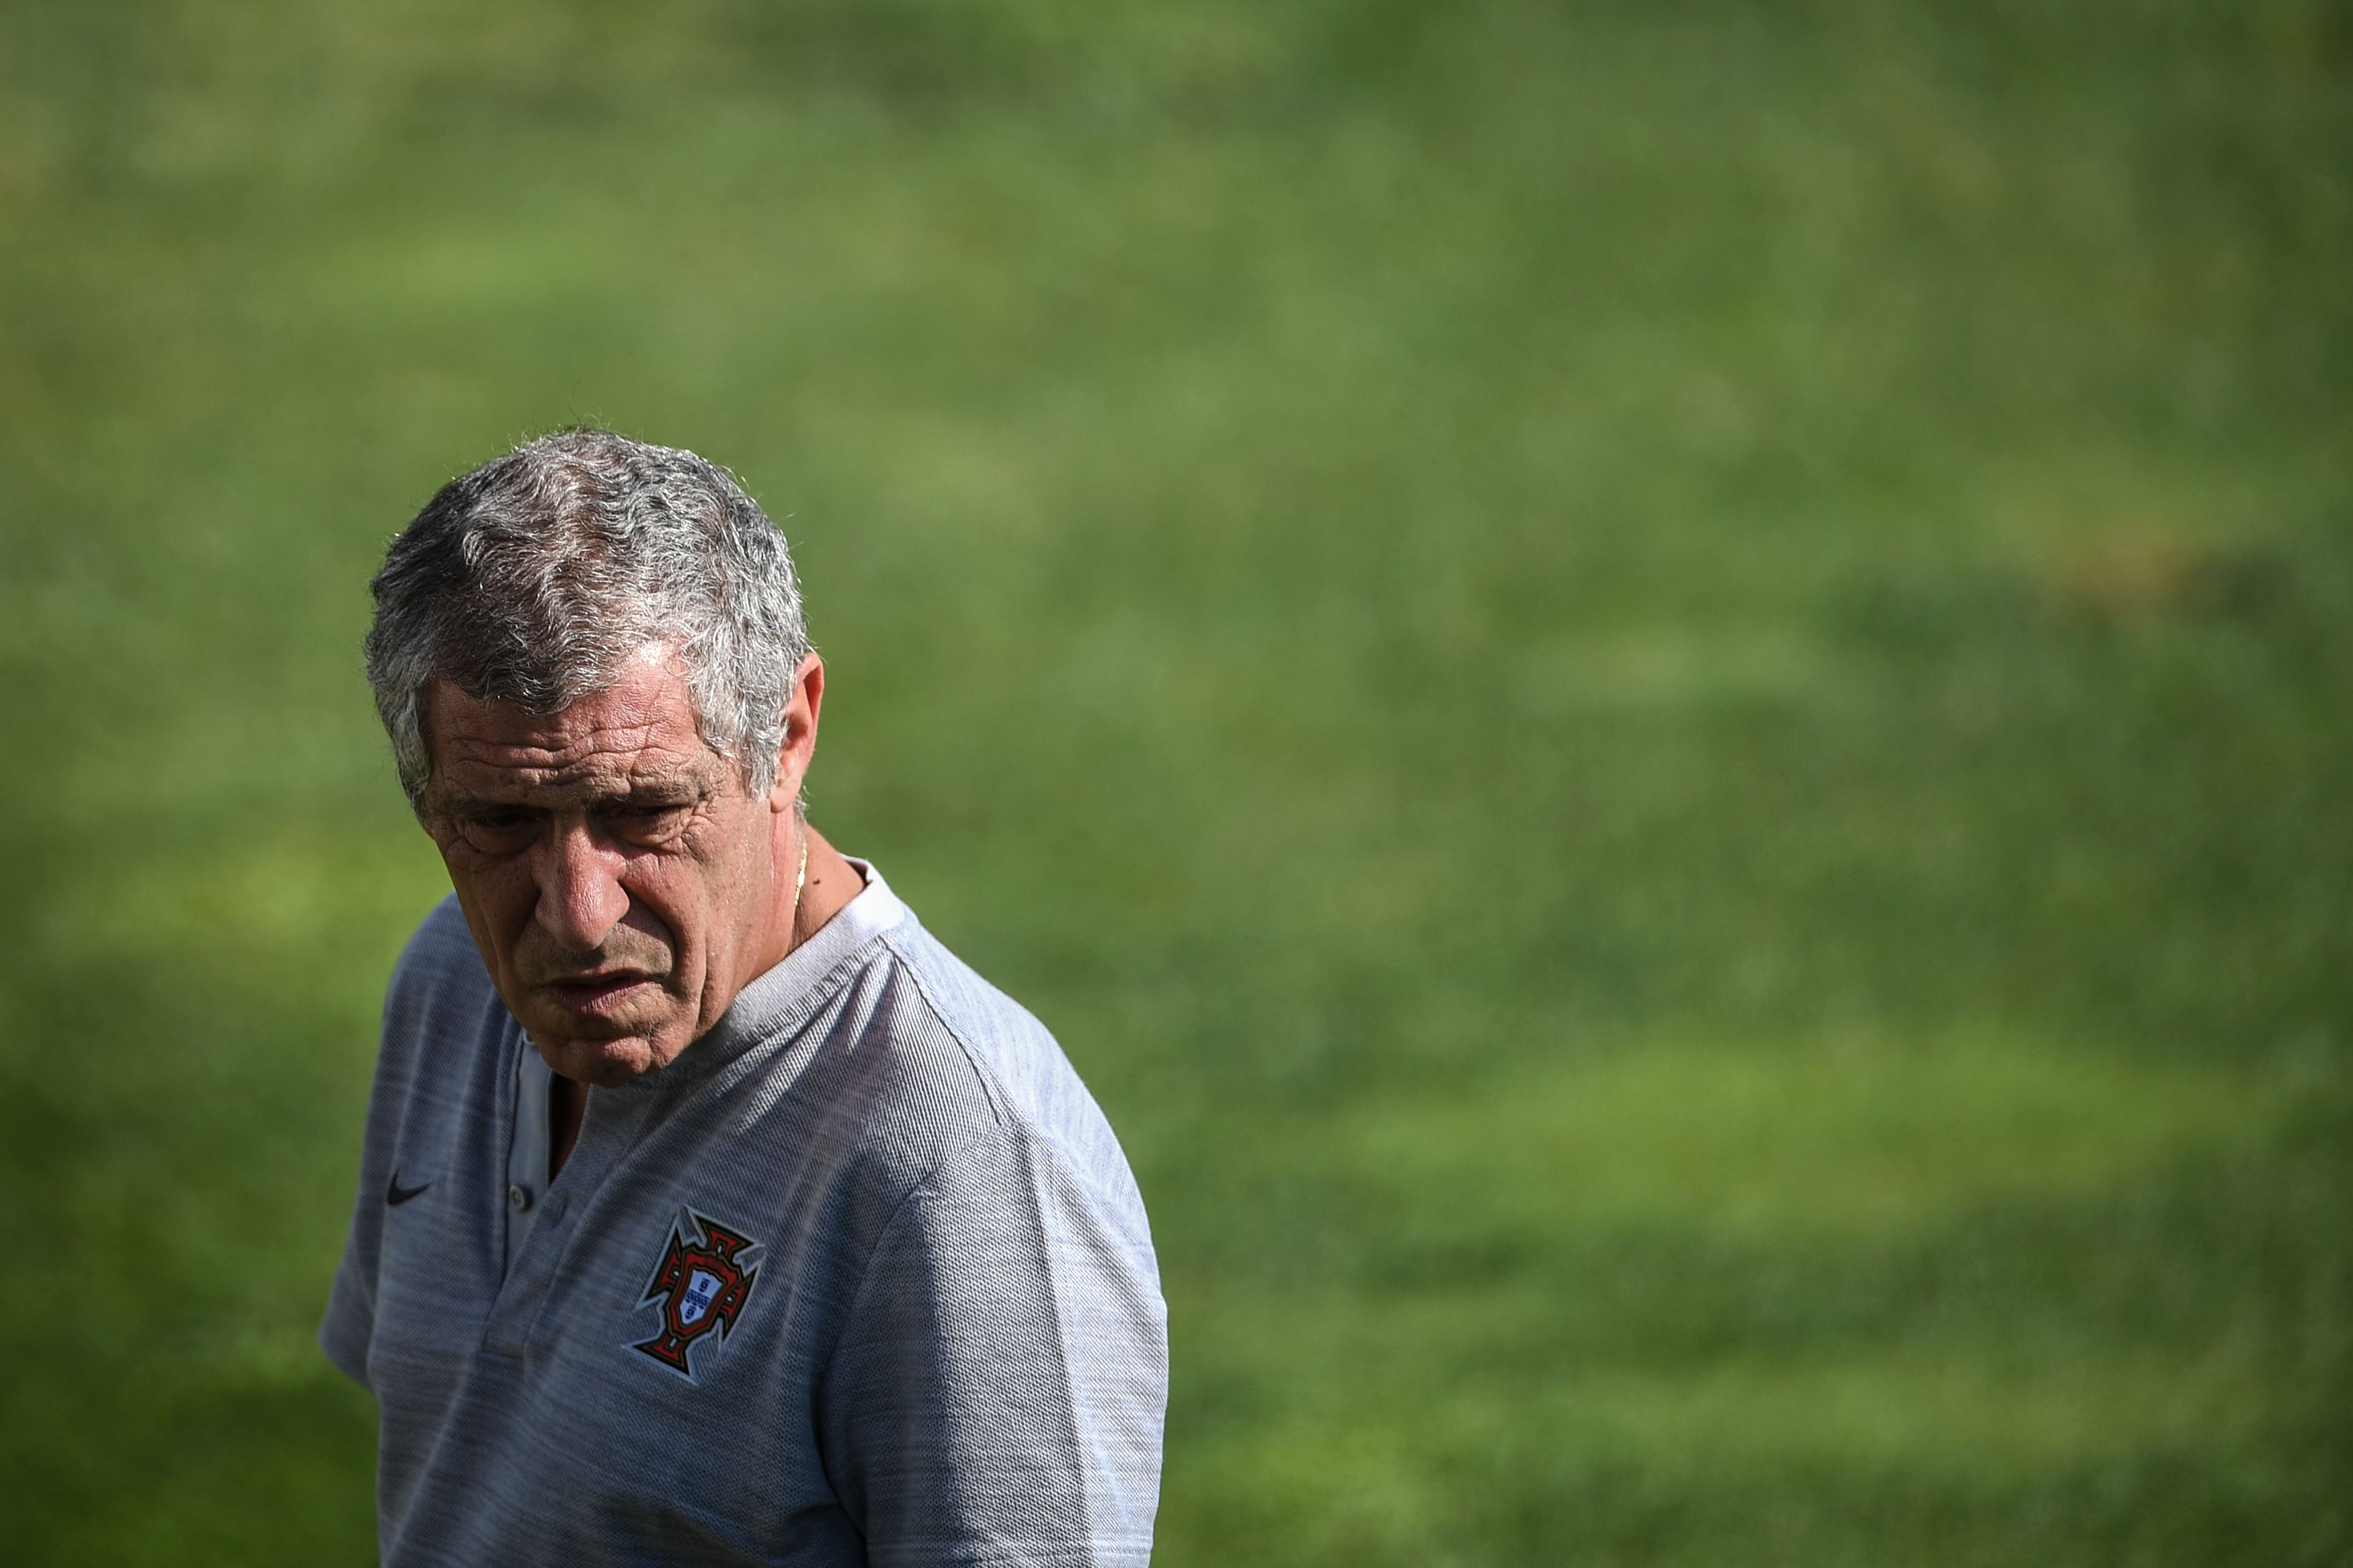 """Portugal's head coach Fernando Santos looks on during a training session at """"Cidade do Futebol"""" training camp in Oeiras, outskirts of Lisbon on September 3, 2019, ahead of the Euro 2020 football qualification match between Portugal and Serbia. (Photo by PATRICIA DE MELO MOREIRA / AFP) (Photo credit should read PATRICIA DE MELO MOREIRA/AFP via Getty Images)"""